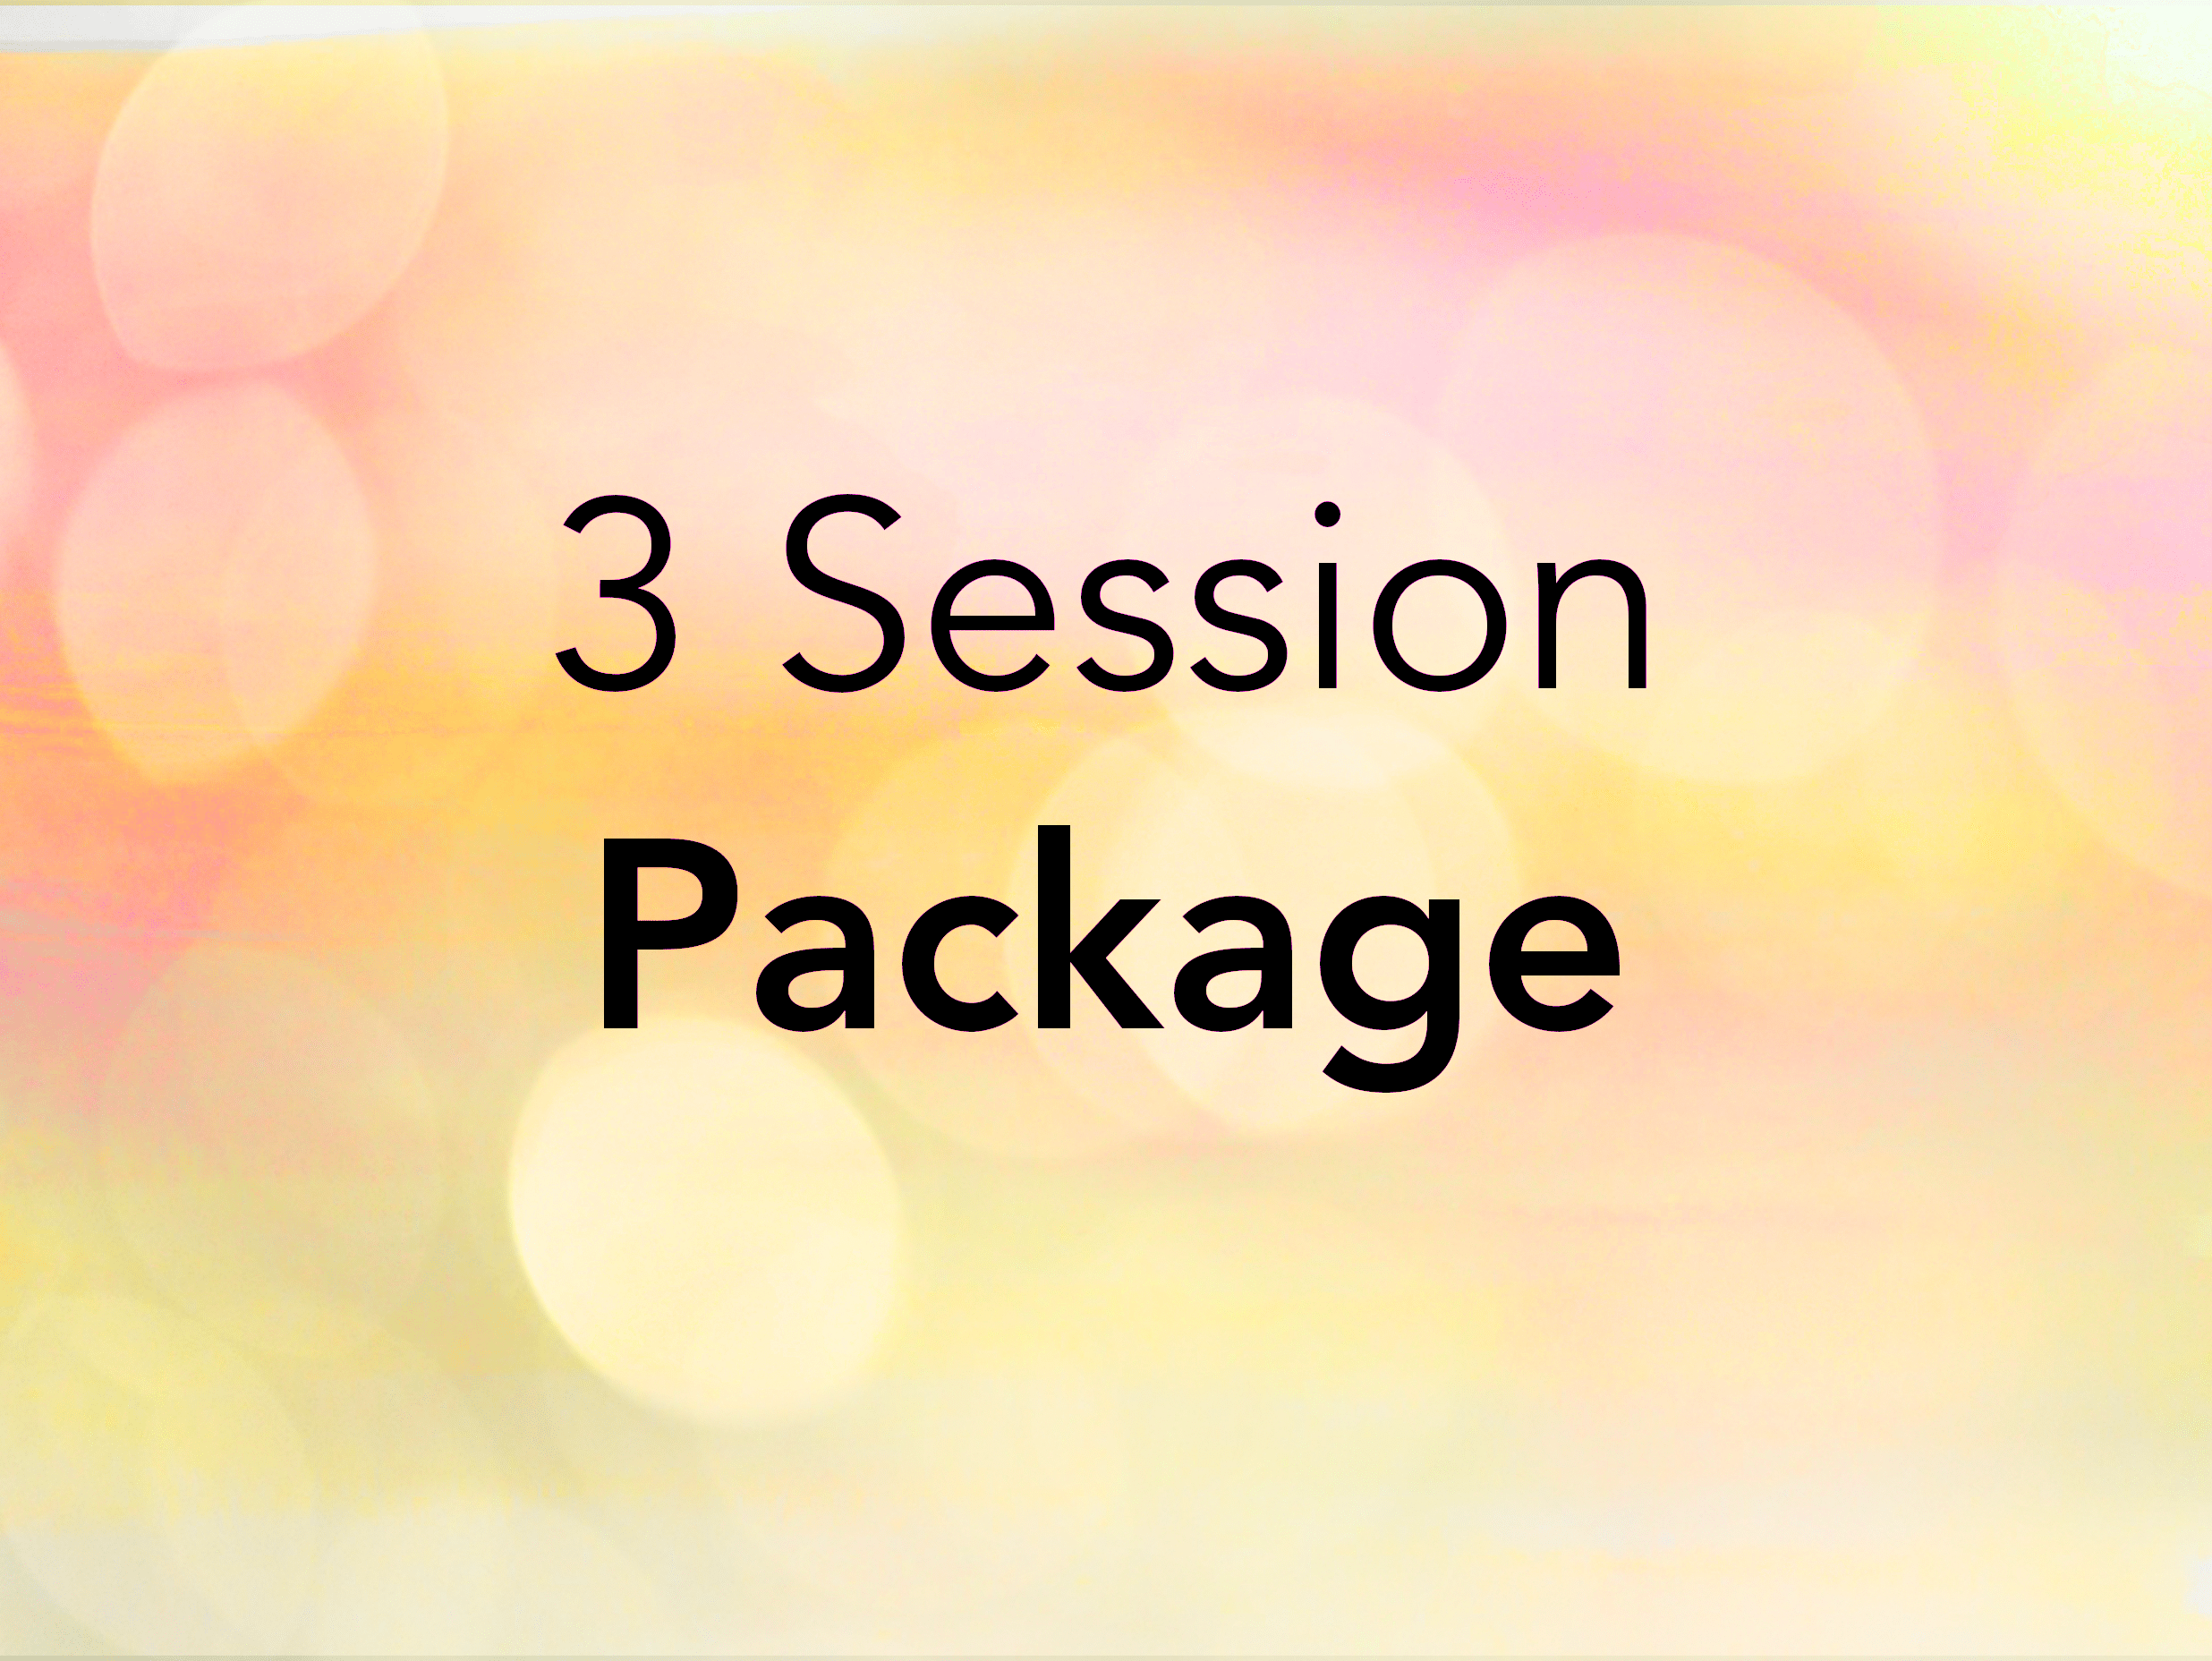 3 Session Package